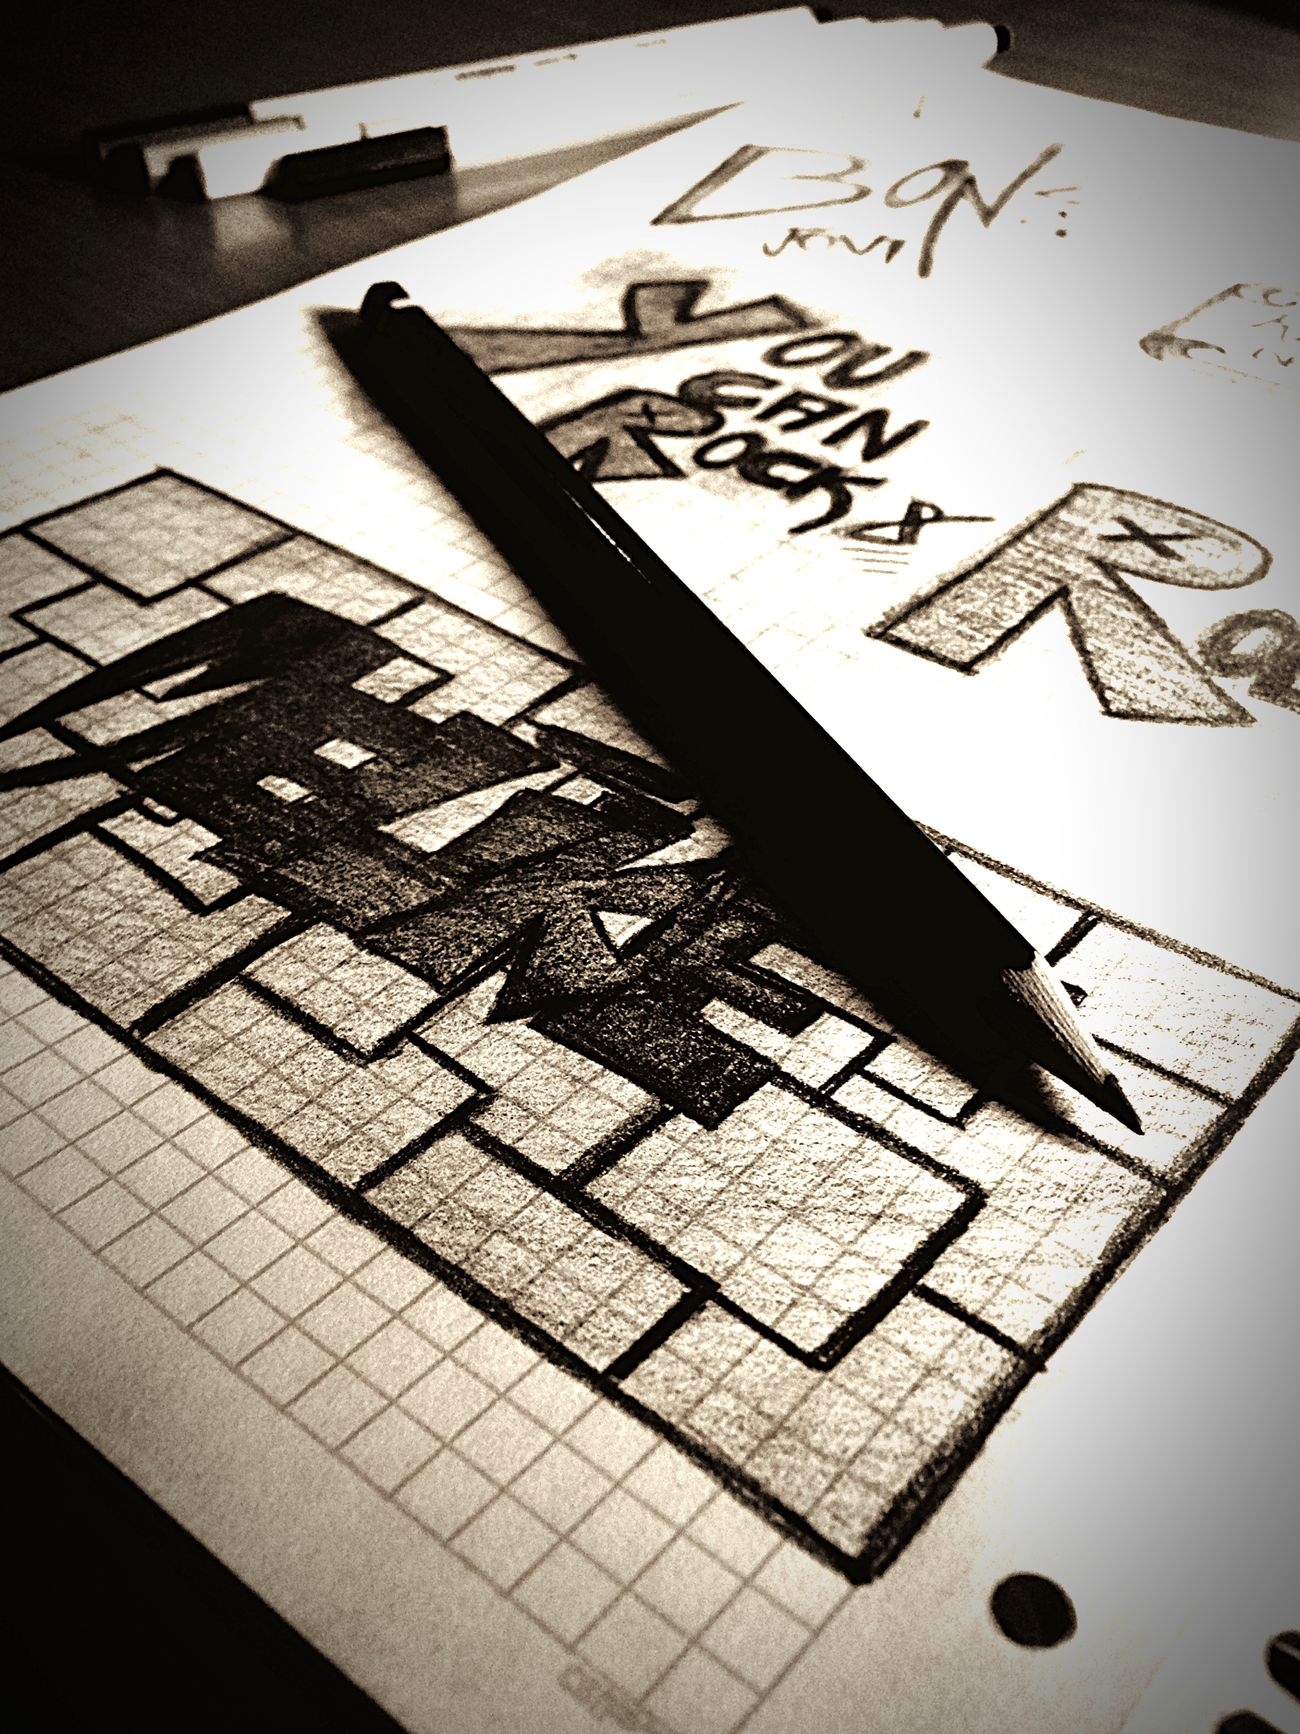 Boredatschool Drawing Black ILoveRockNRoll Bonjovi Art